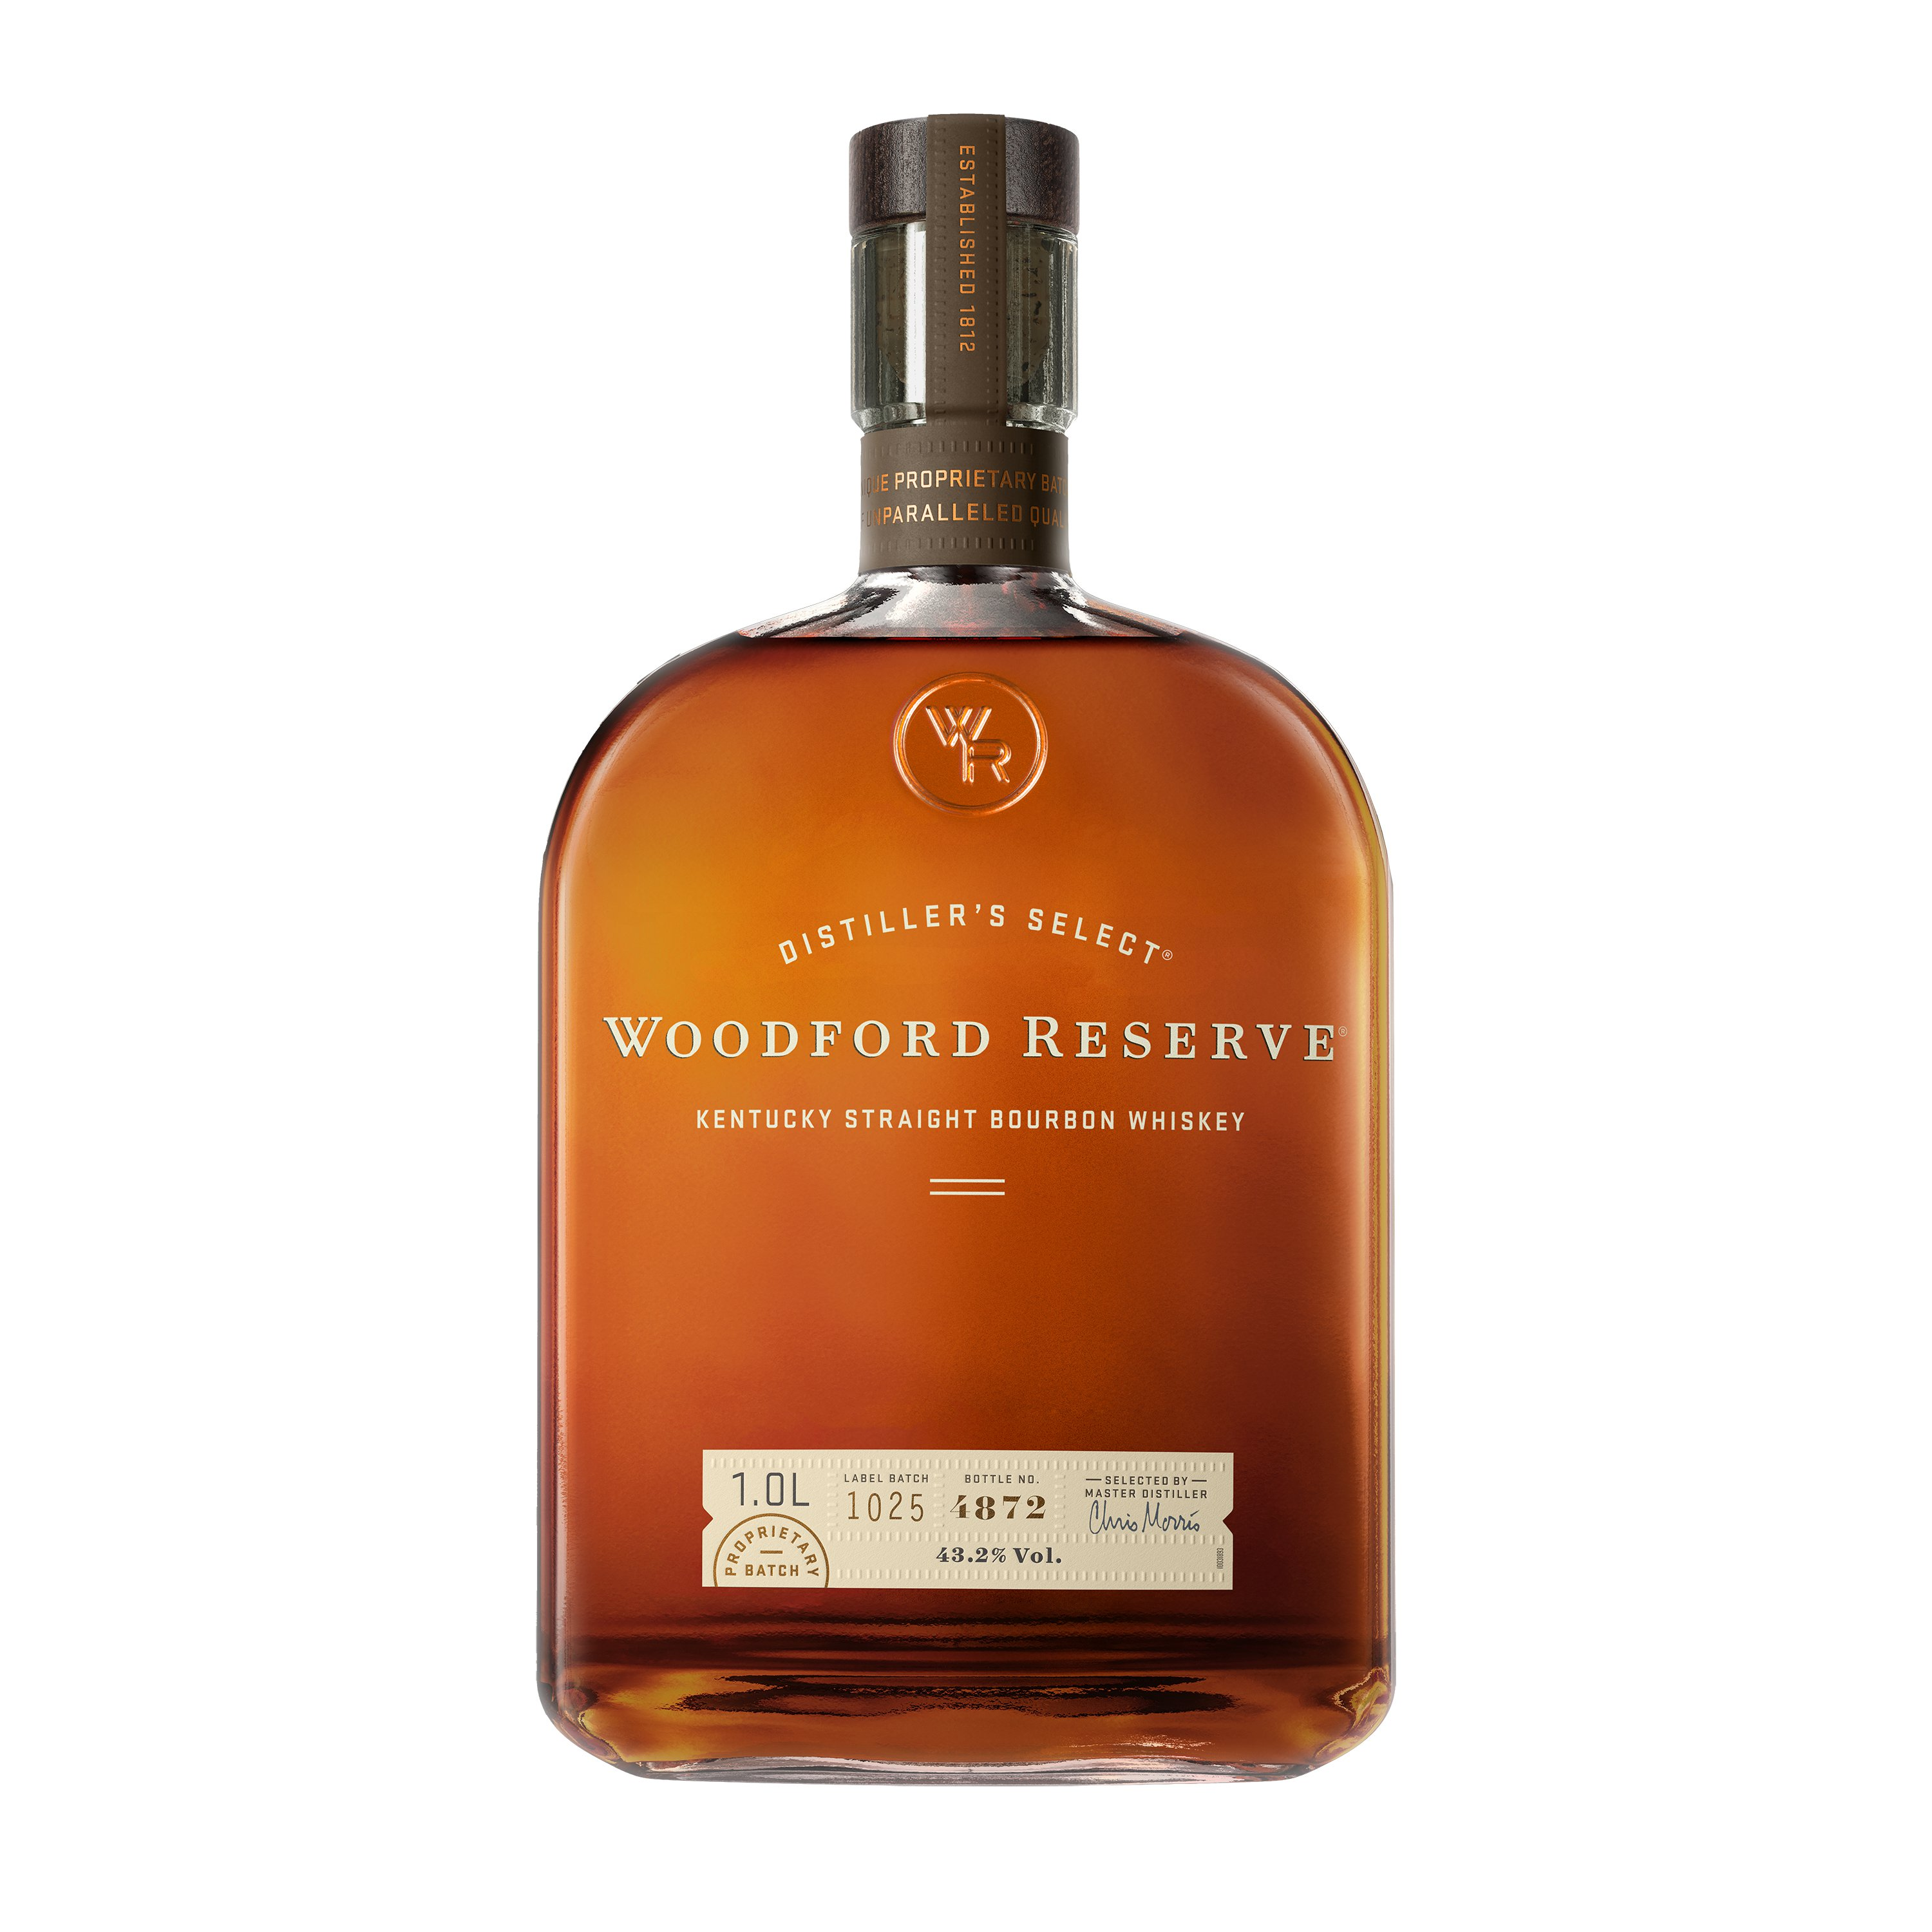 Woodford Reserve Distiller's Select Kentucky Straight Bourbon Whiskey 90.4 Proof